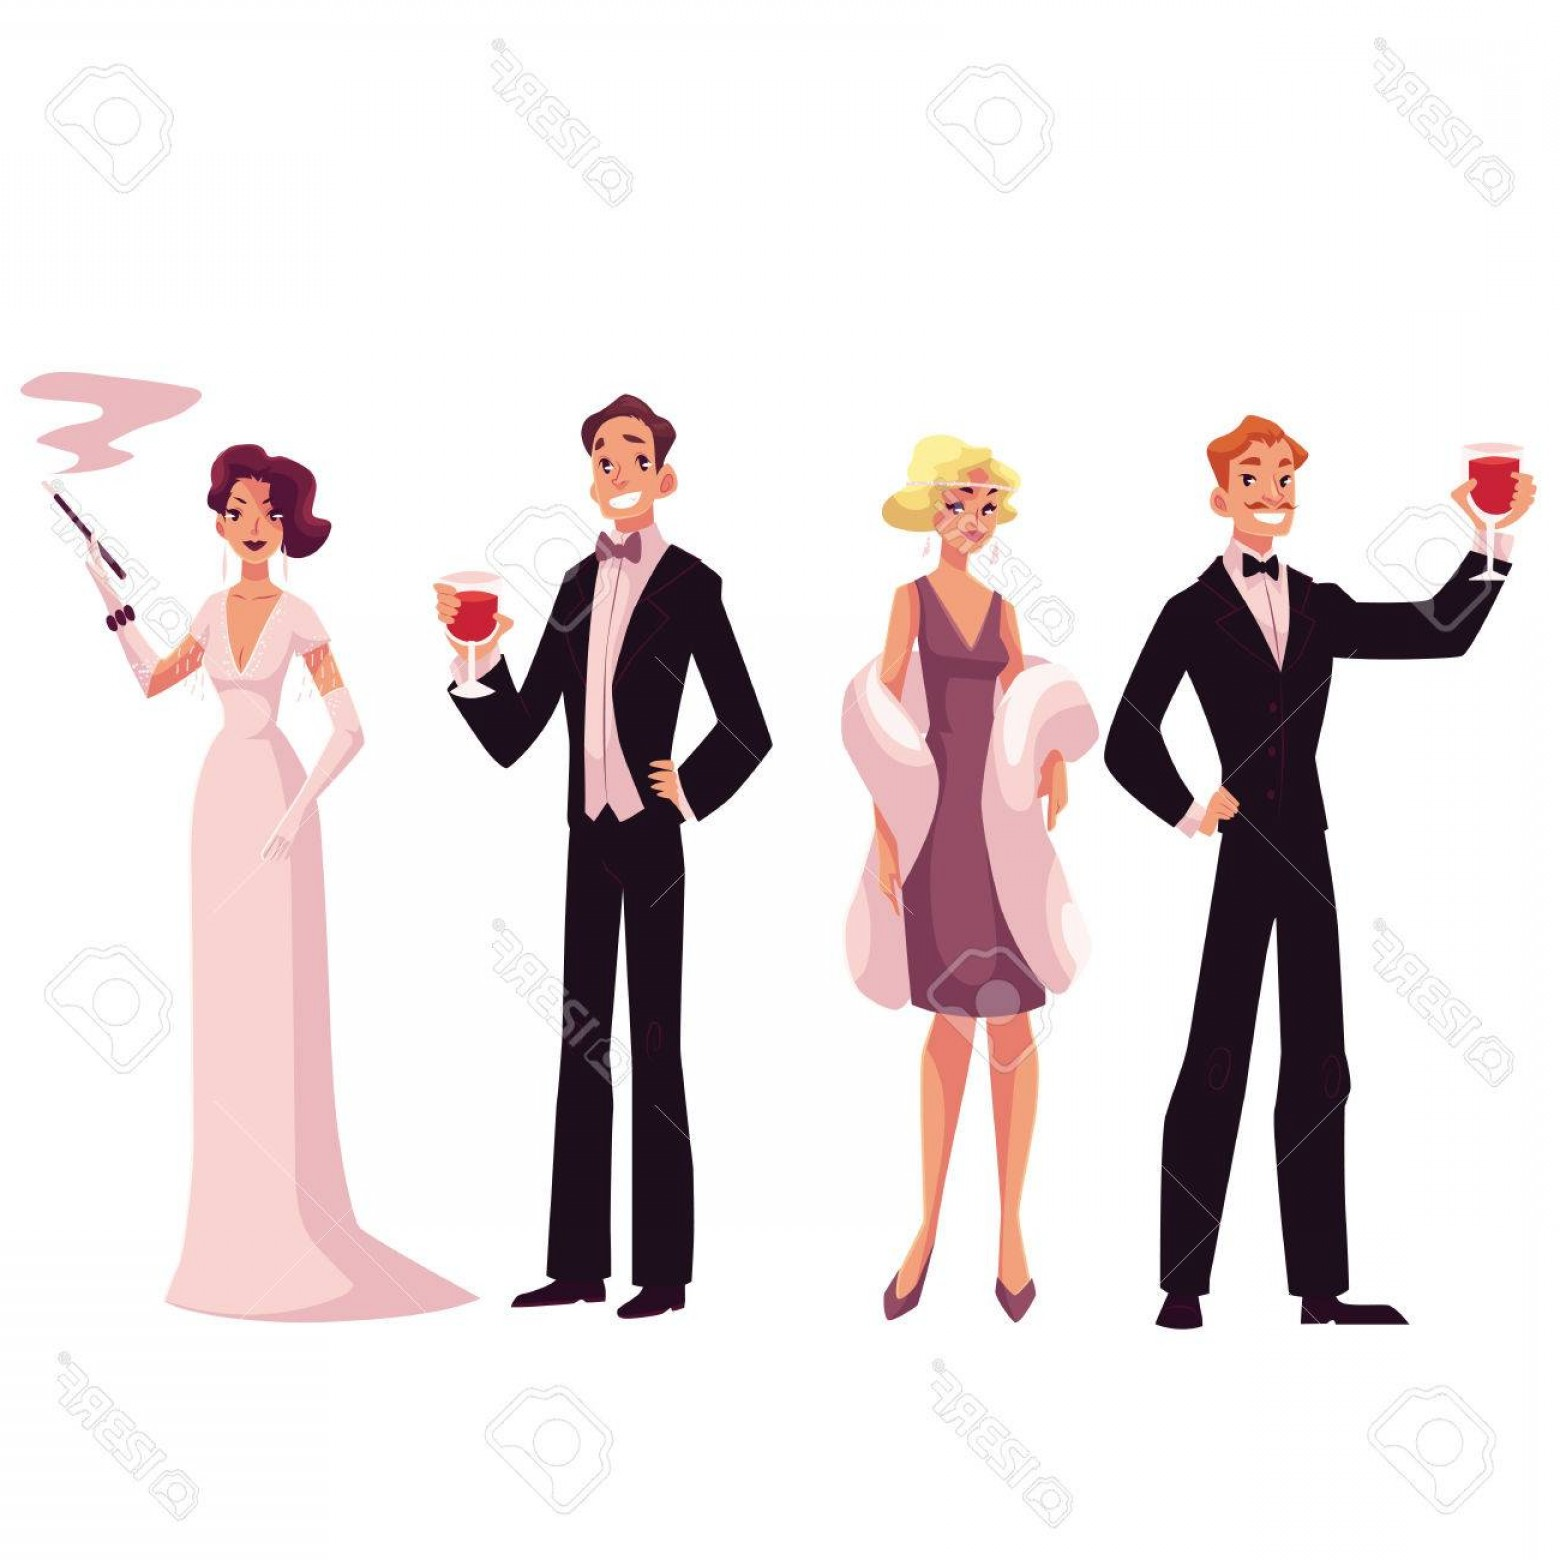 White Retro Vector People: Photostock Vector People In S Style Cocktail Dresses At Vintage Party Cartoon Vector Illustration Isolated On Whit